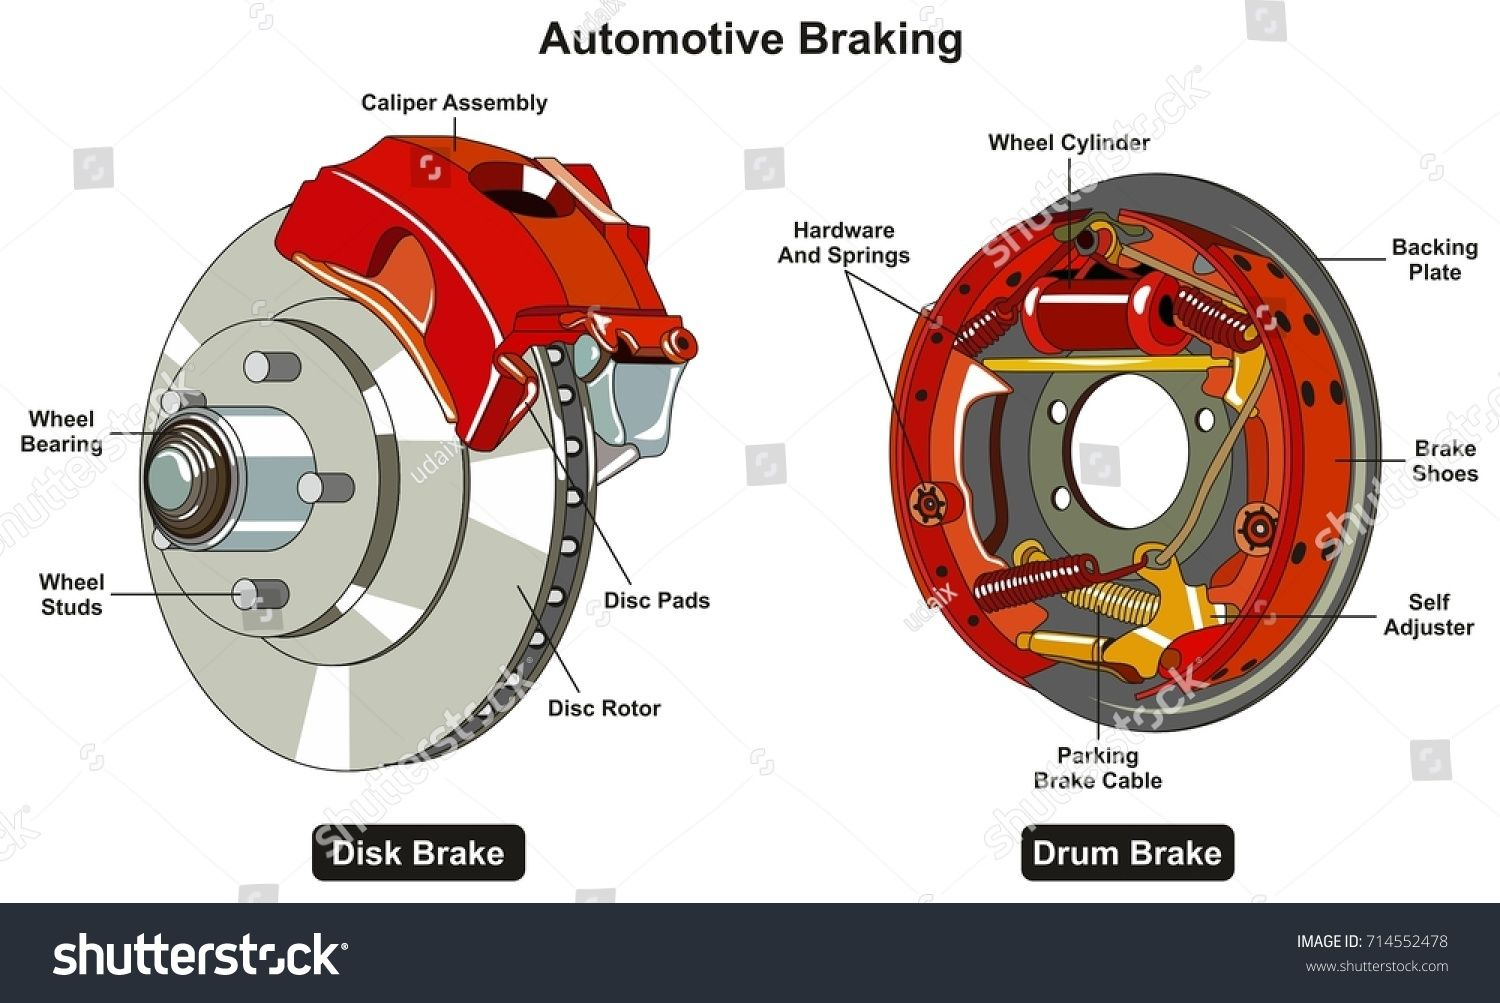 small resolution of common automotive braking system infographic diagram showing two types disk and drum car brake with all parts for road traffic safety awareness and